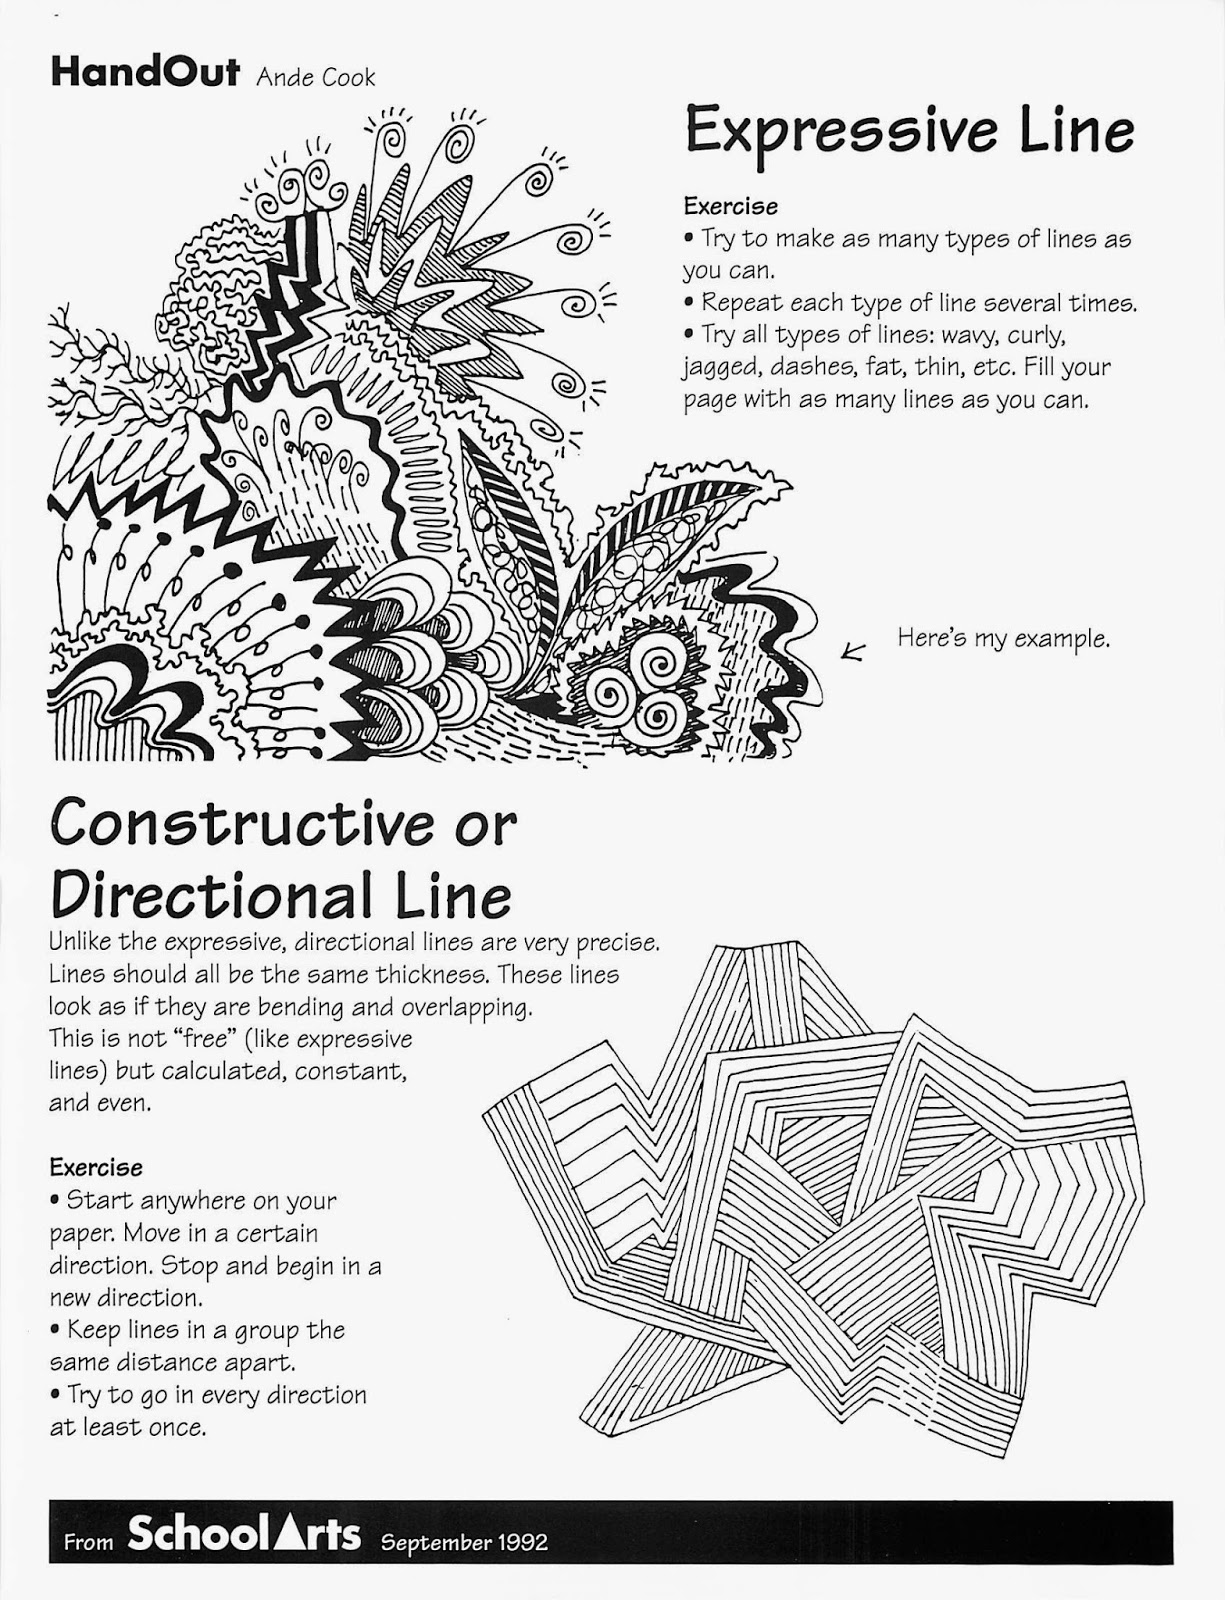 Line Art Exercises : No corner suns free expressive line handout and